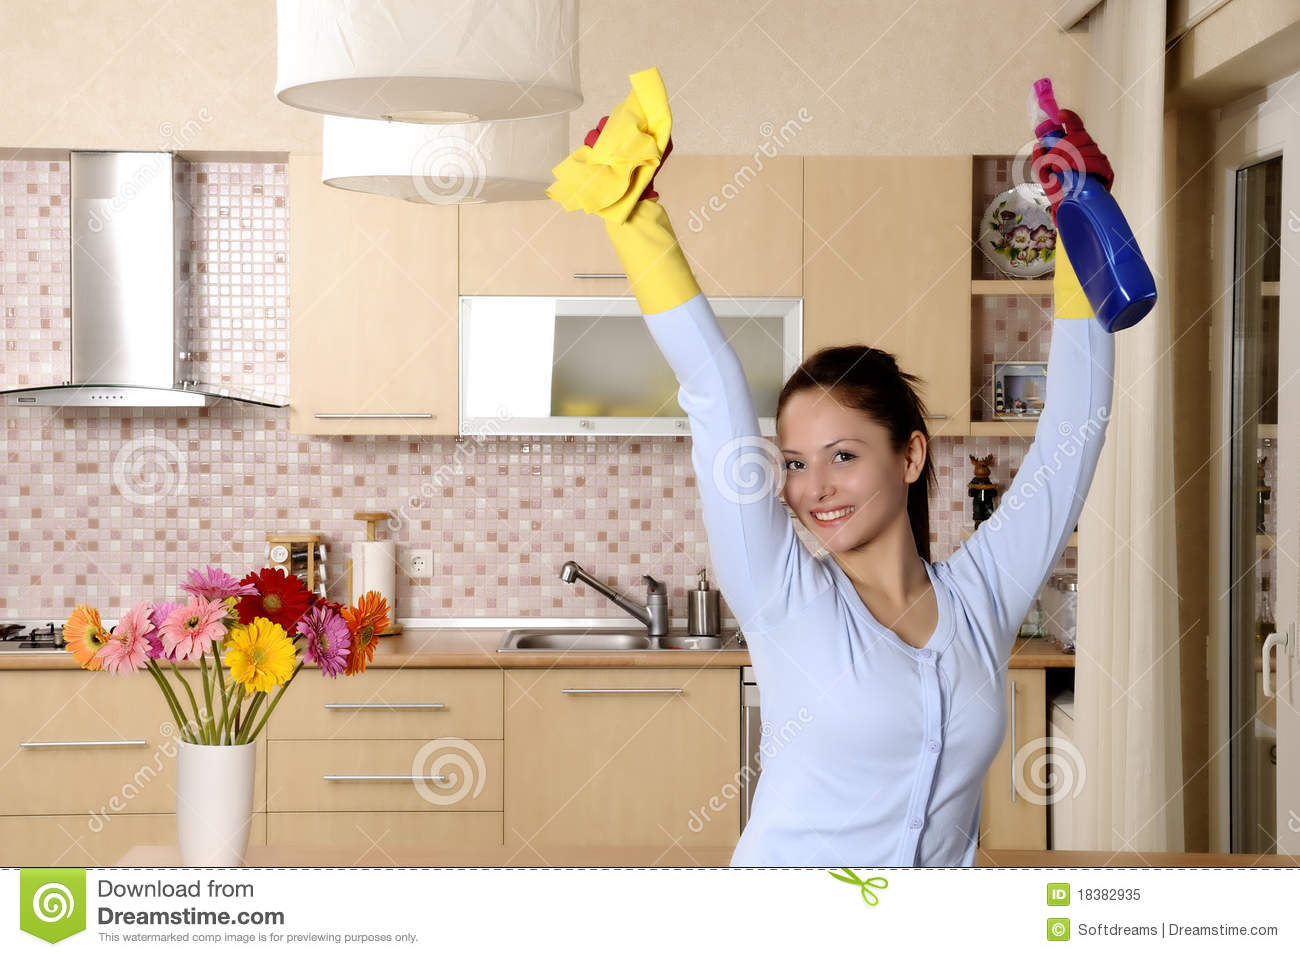 Woman Happy Kitchen Floor